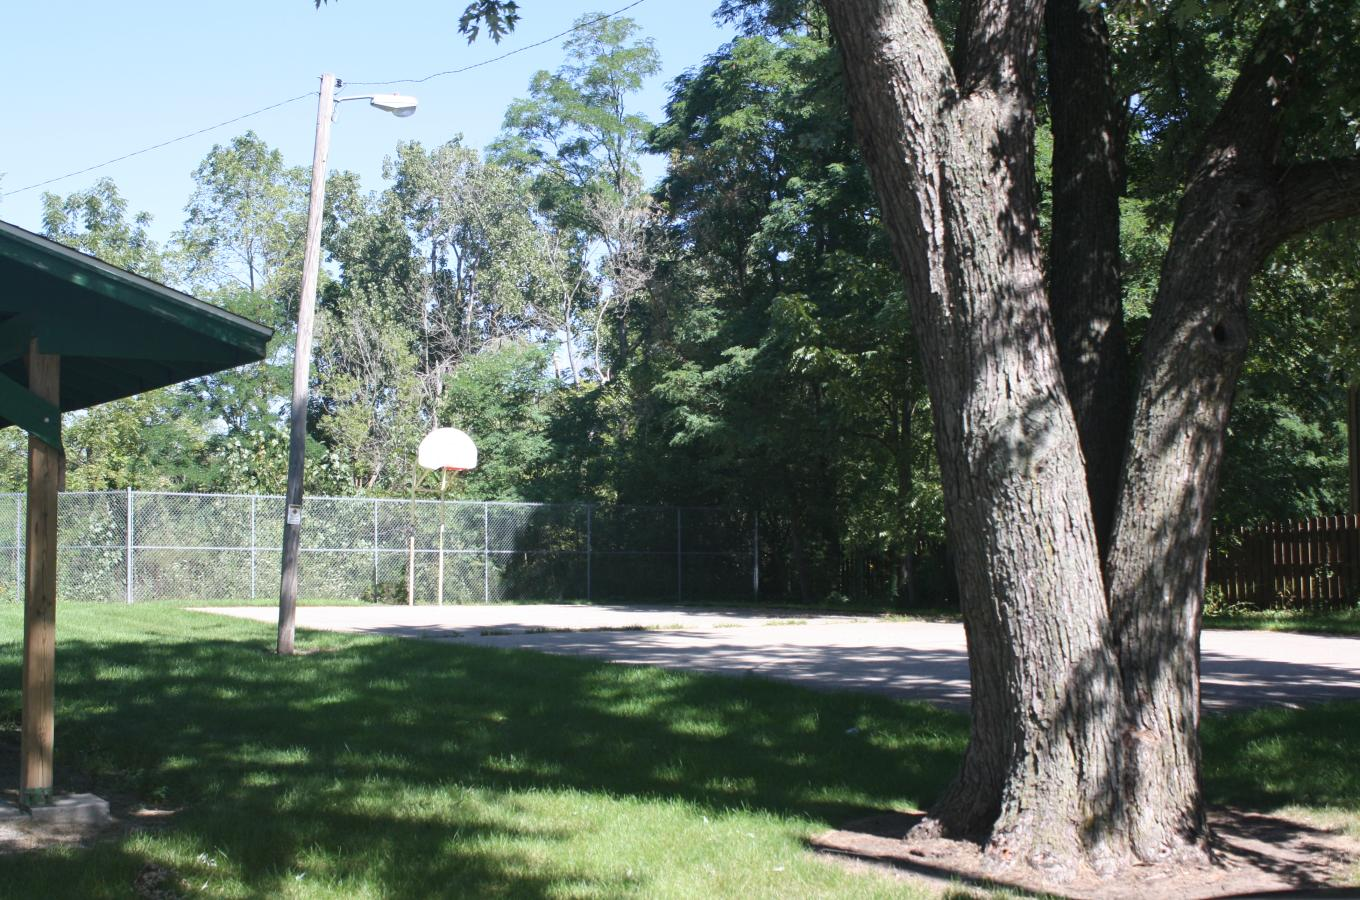 Carol Beach Park basketball court V Pic